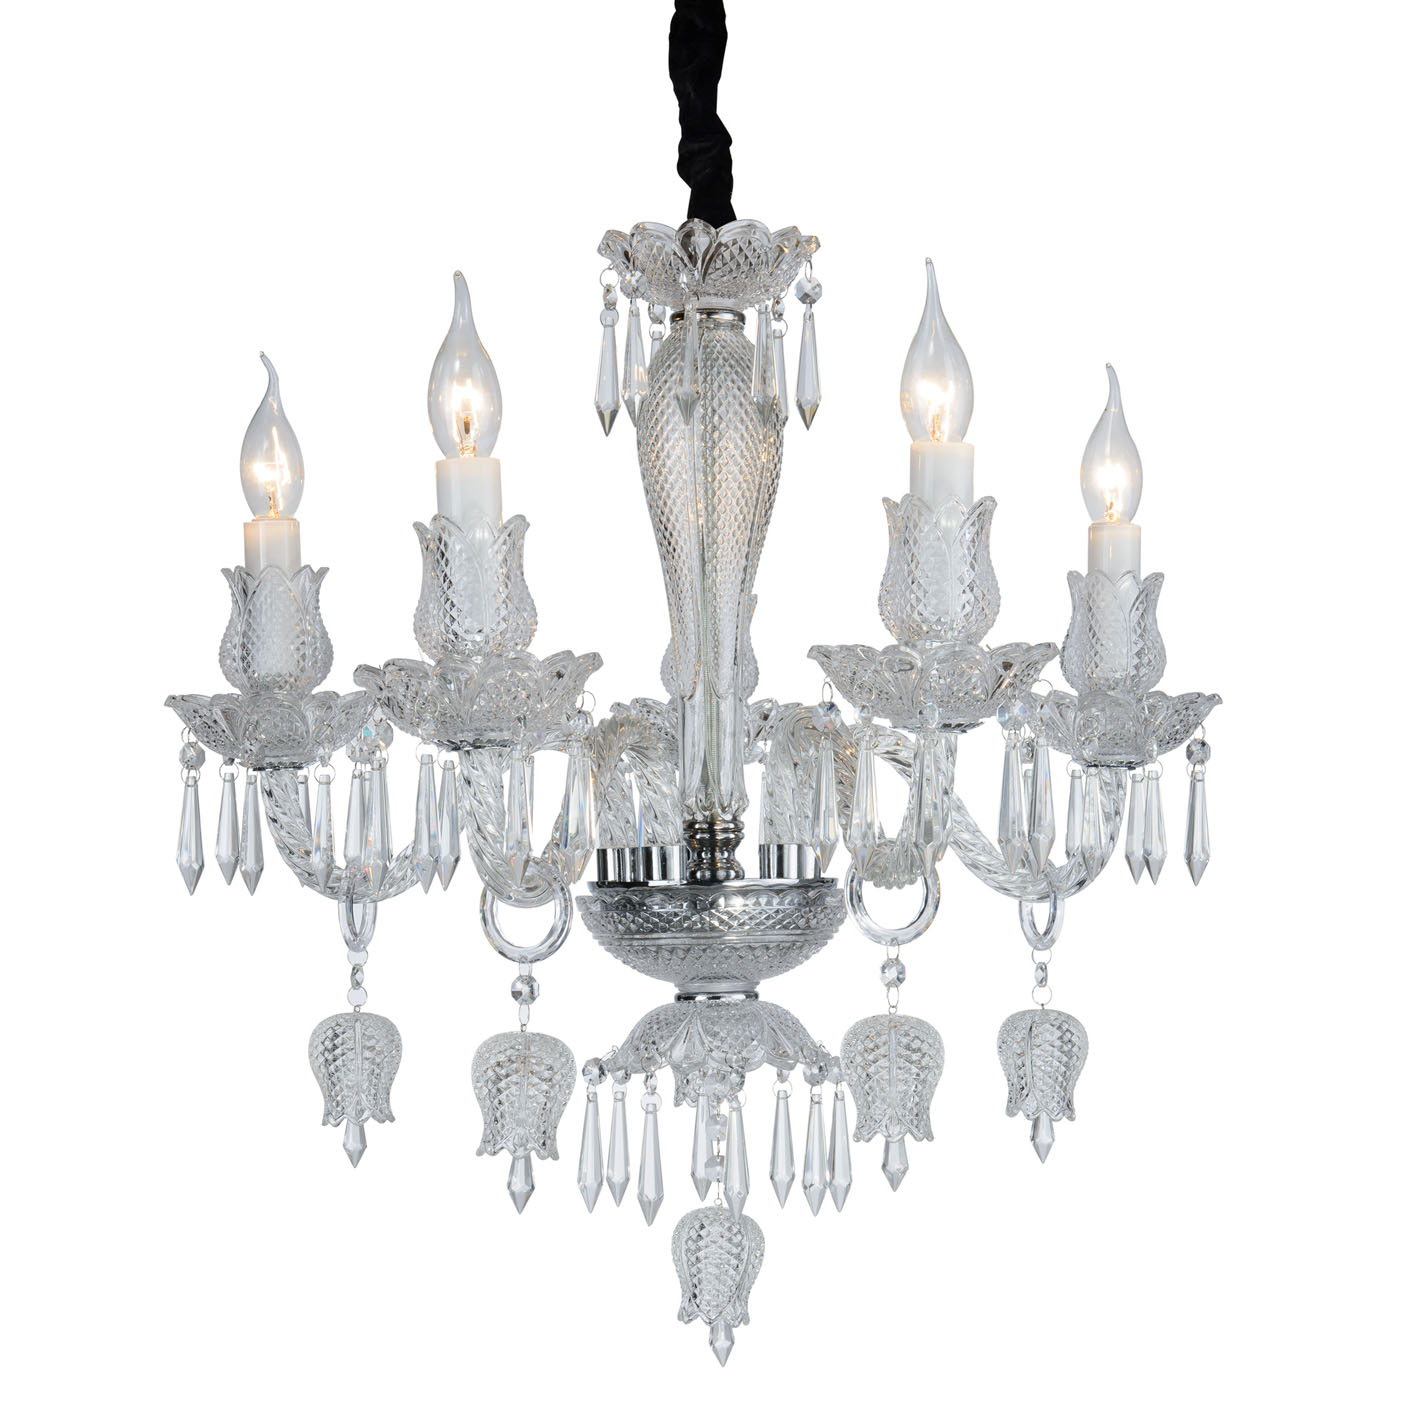 Chandelier ceiling Crystal Transparent Flowers and Tulips, 5-Arm 2084-5